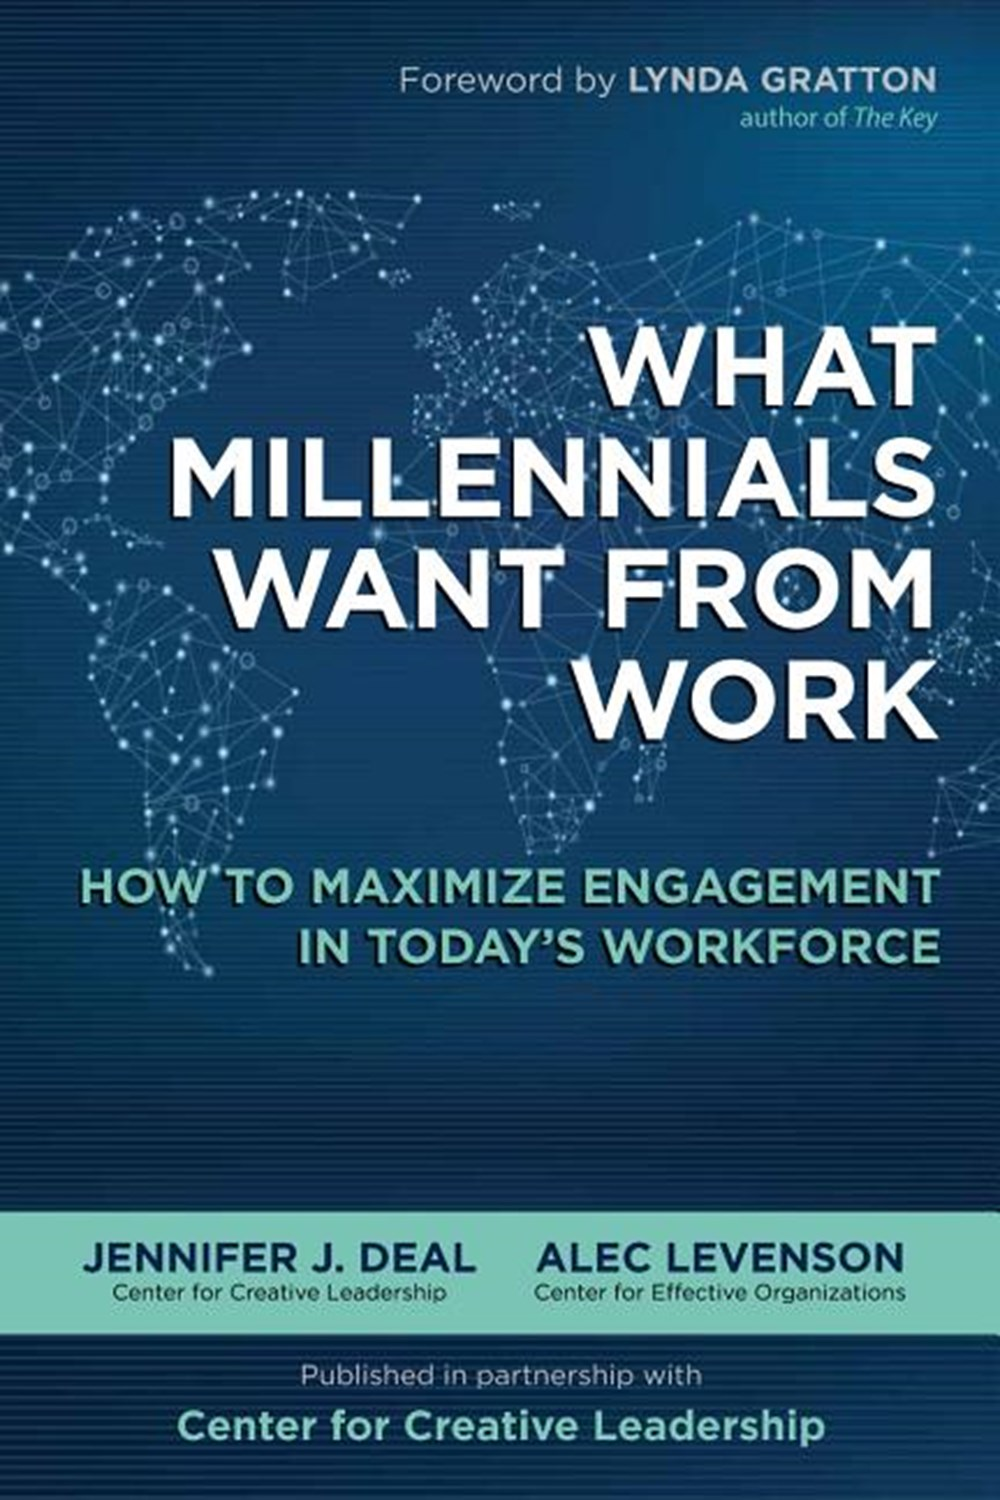 What Millennials Want from Work How to Maximize Engagement in Today's Workforce